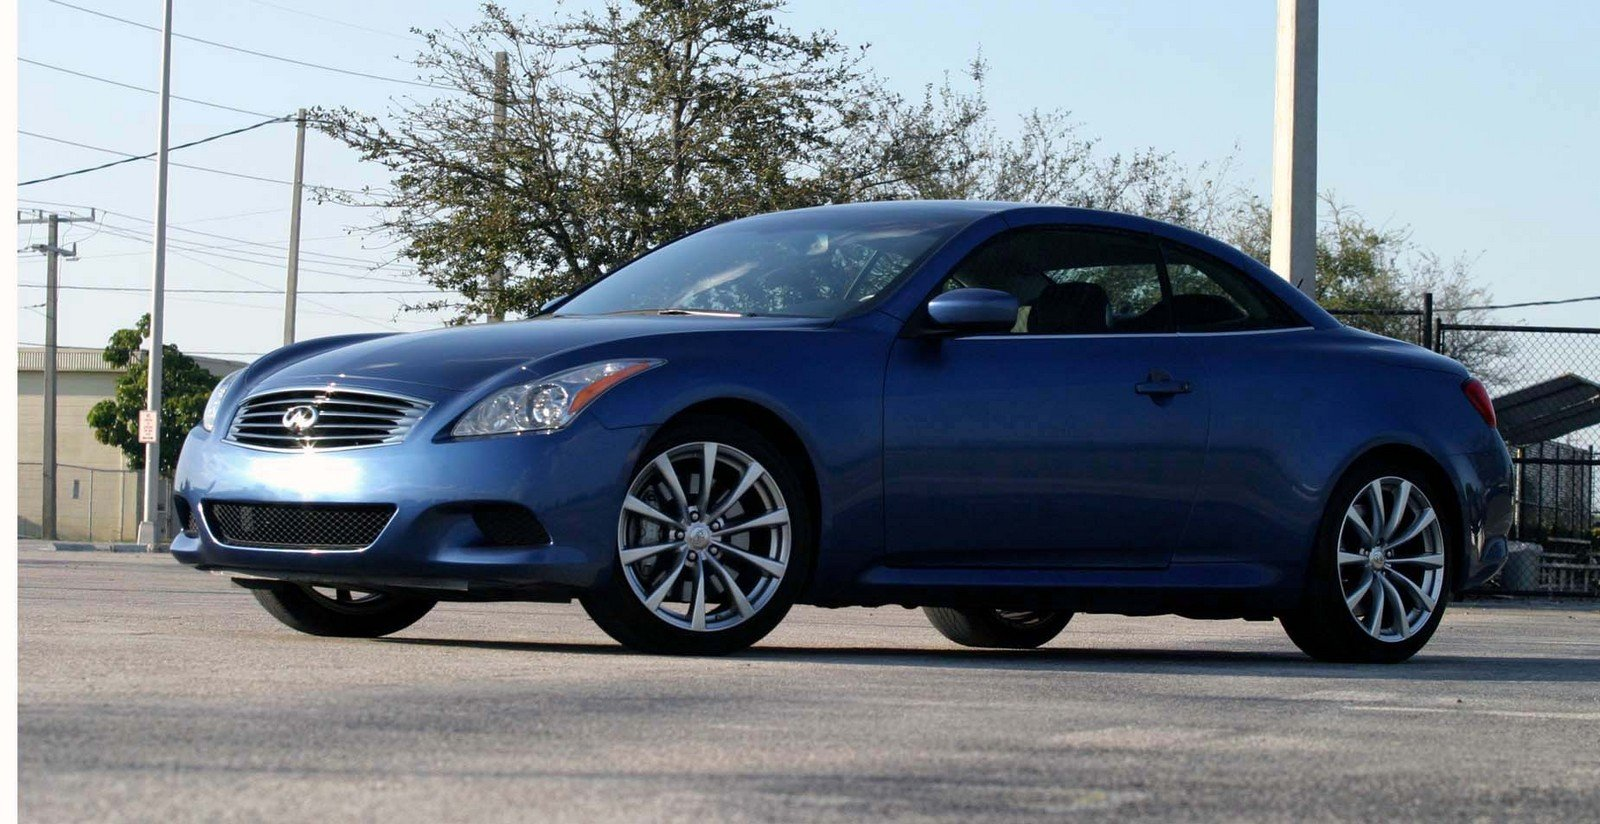 2010 infiniti g37s review top speed. Black Bedroom Furniture Sets. Home Design Ideas